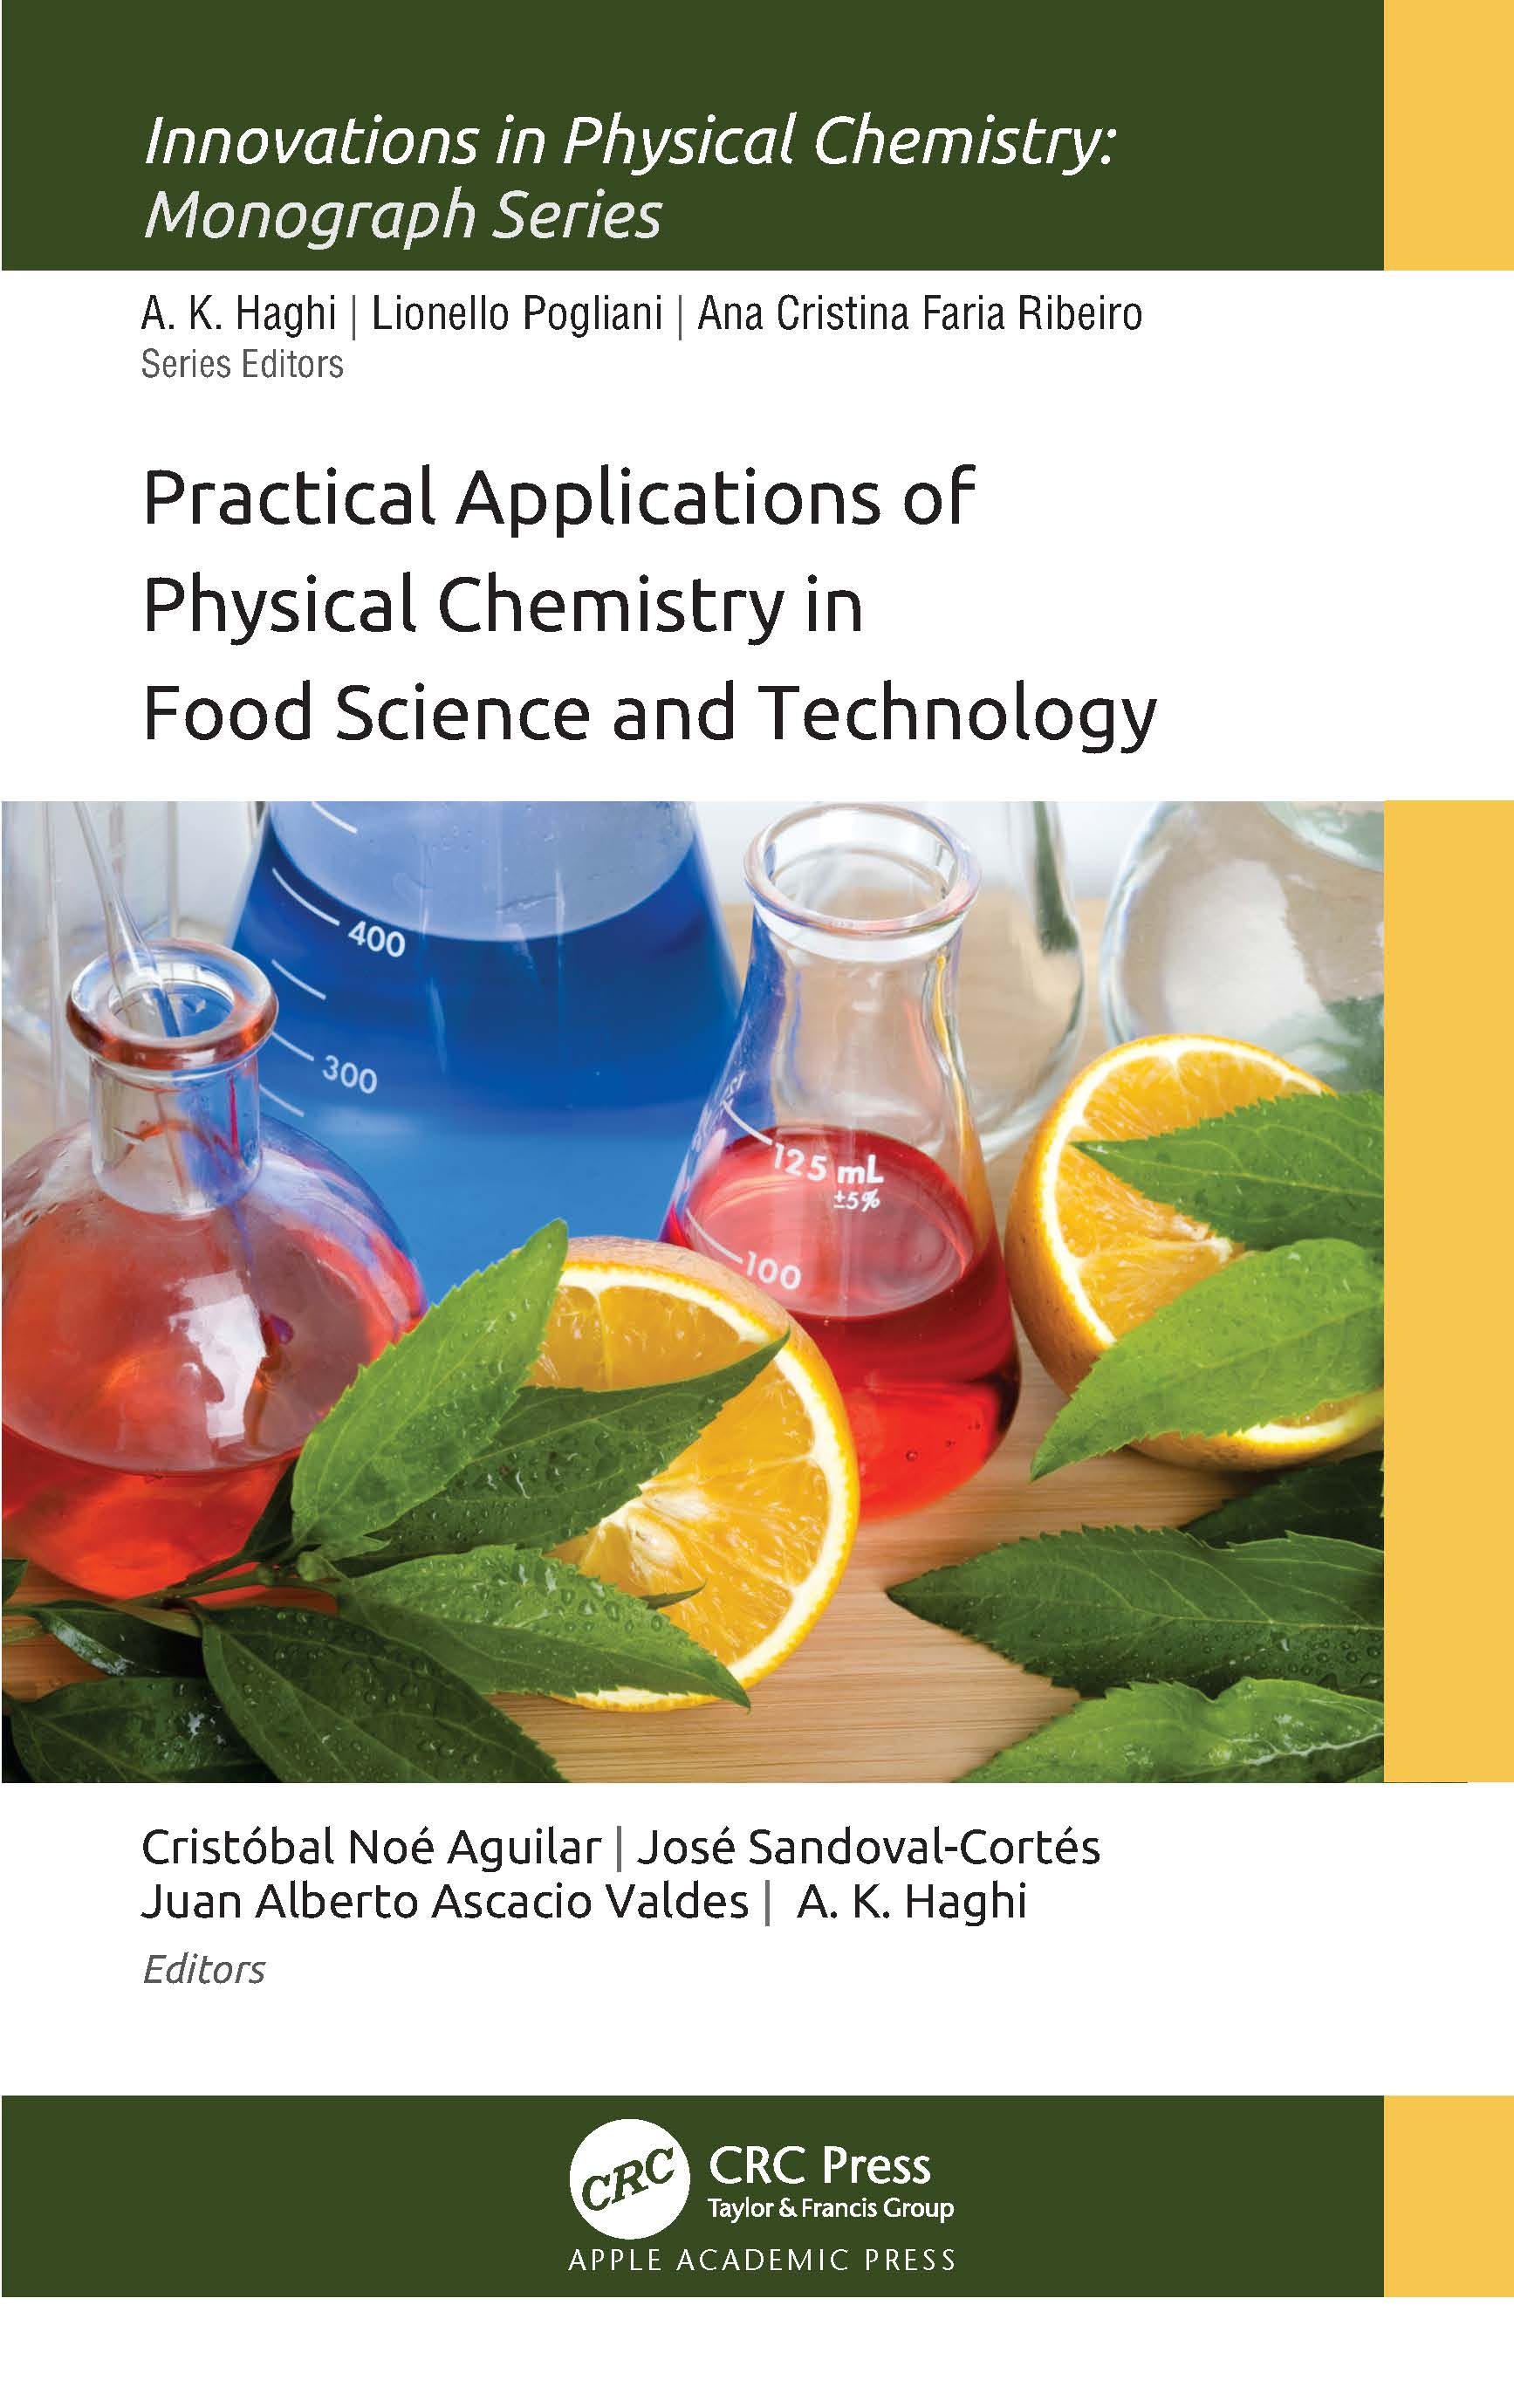 Practical Applications of Physical Chemistry in Food Science and Technology book cover